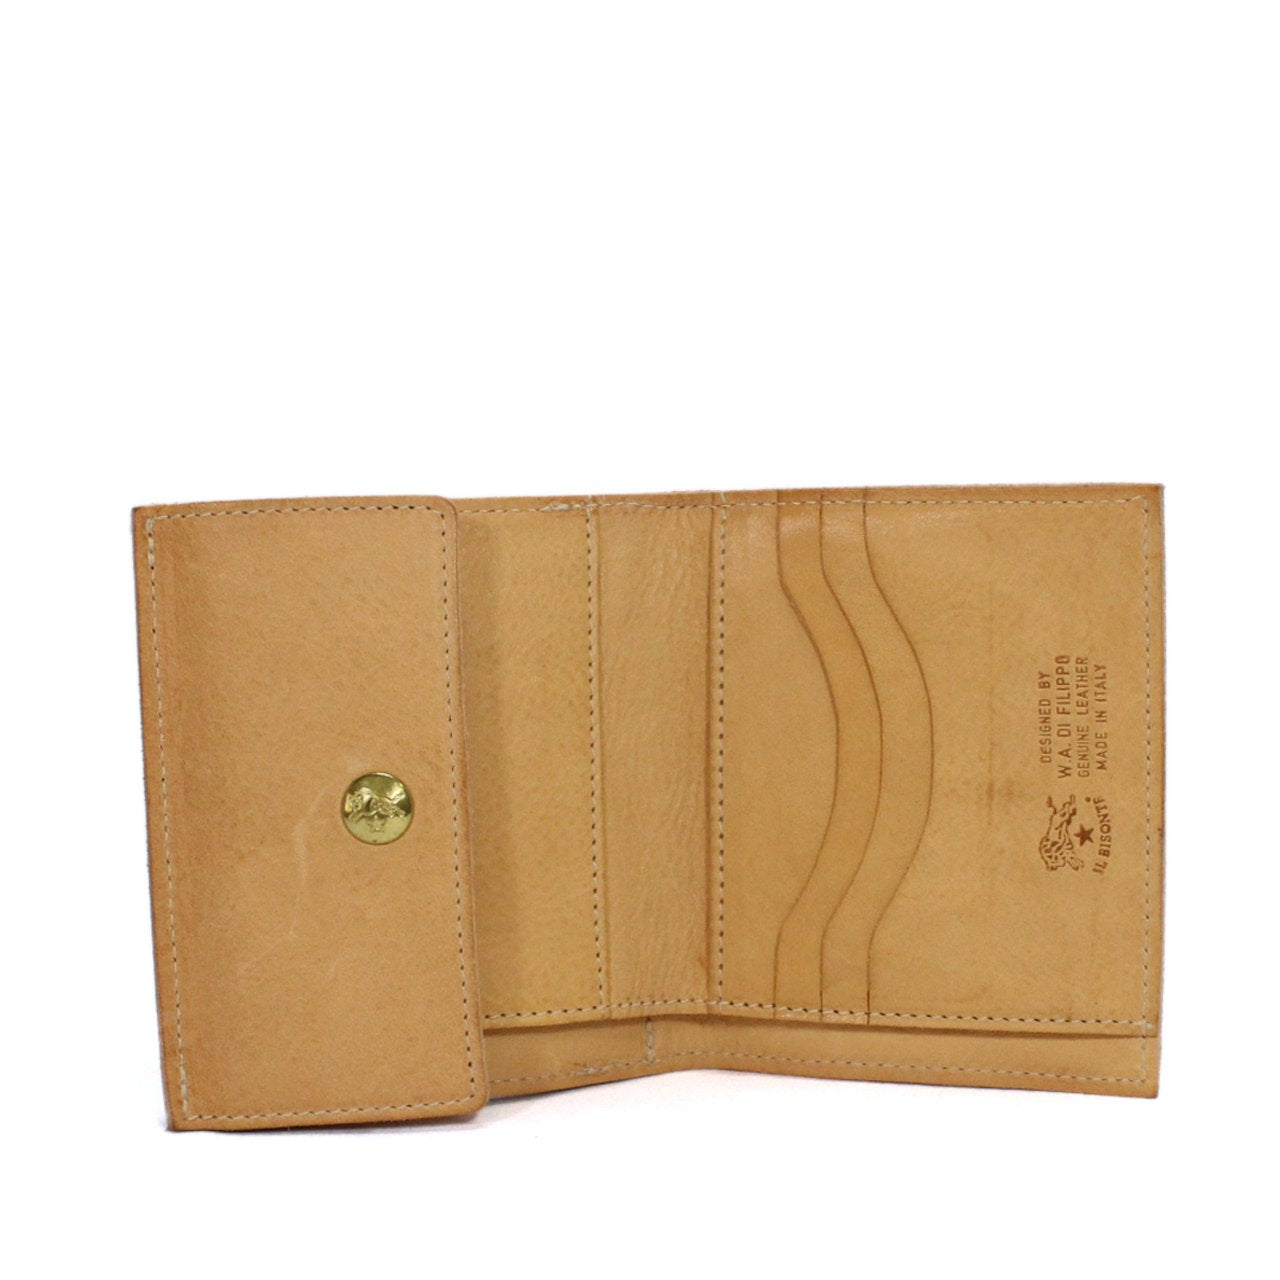 Il Bisonte Two-Fold Wallet